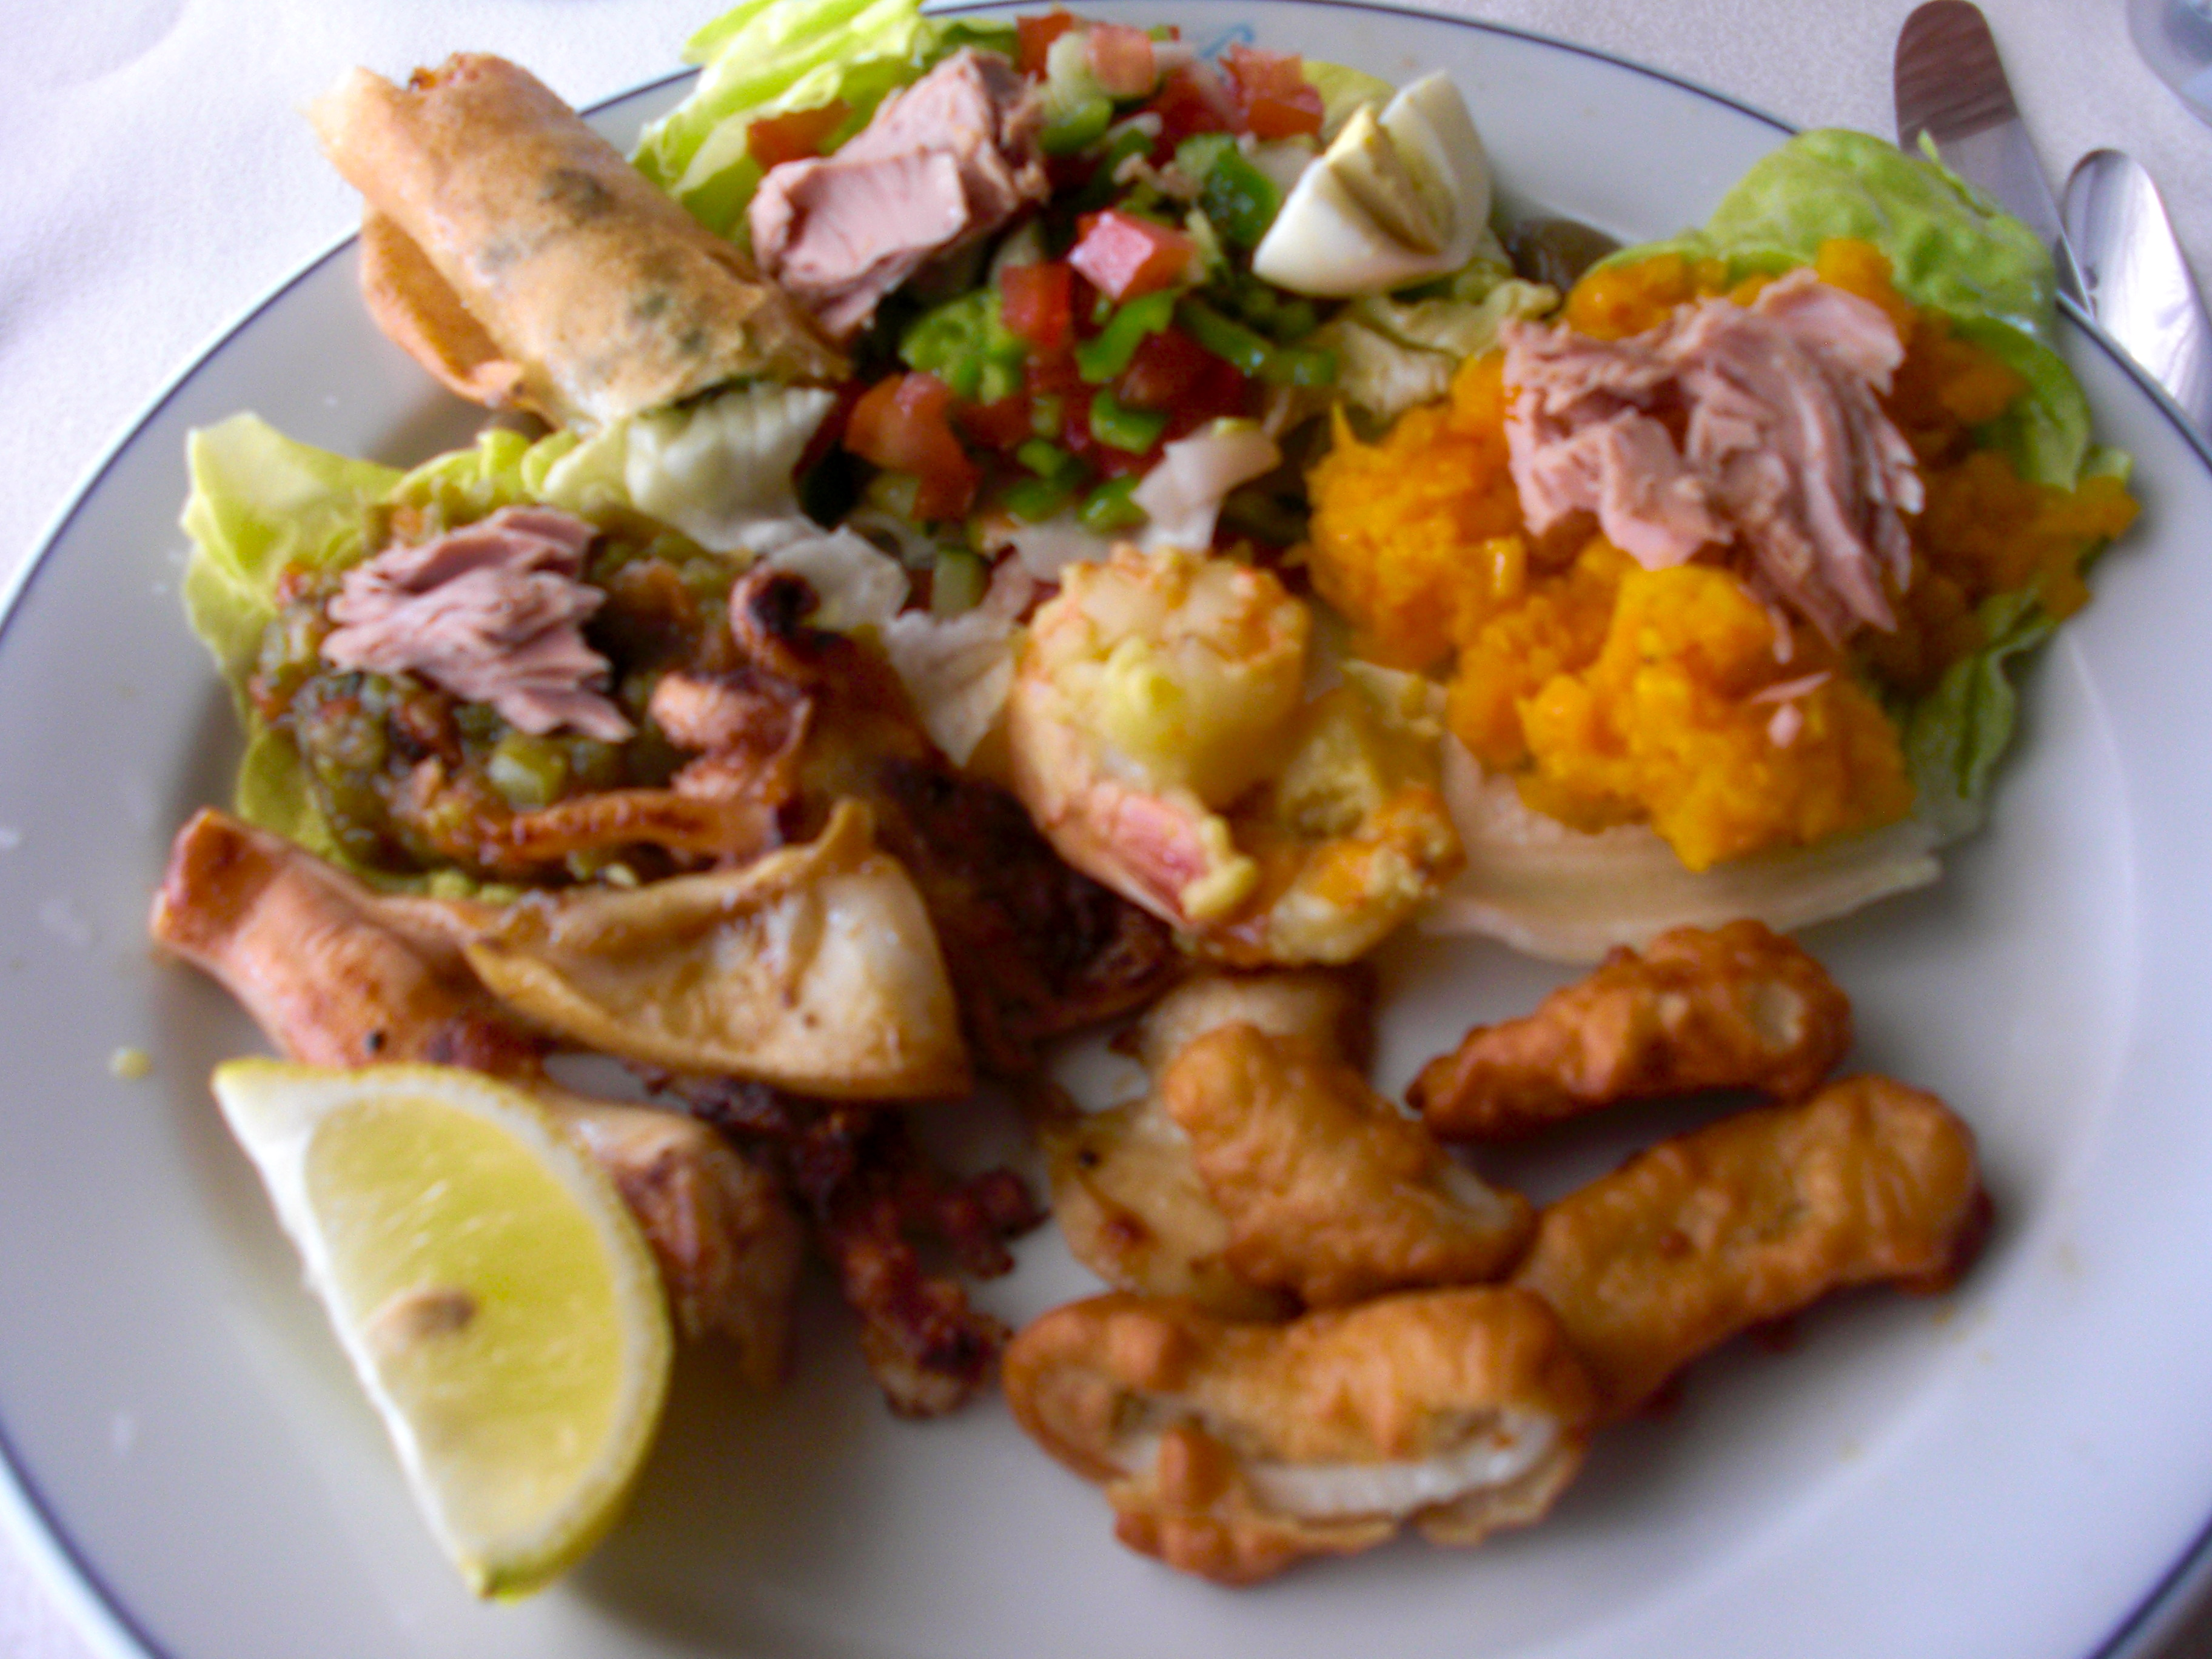 What is considered Tunisian cuisine?